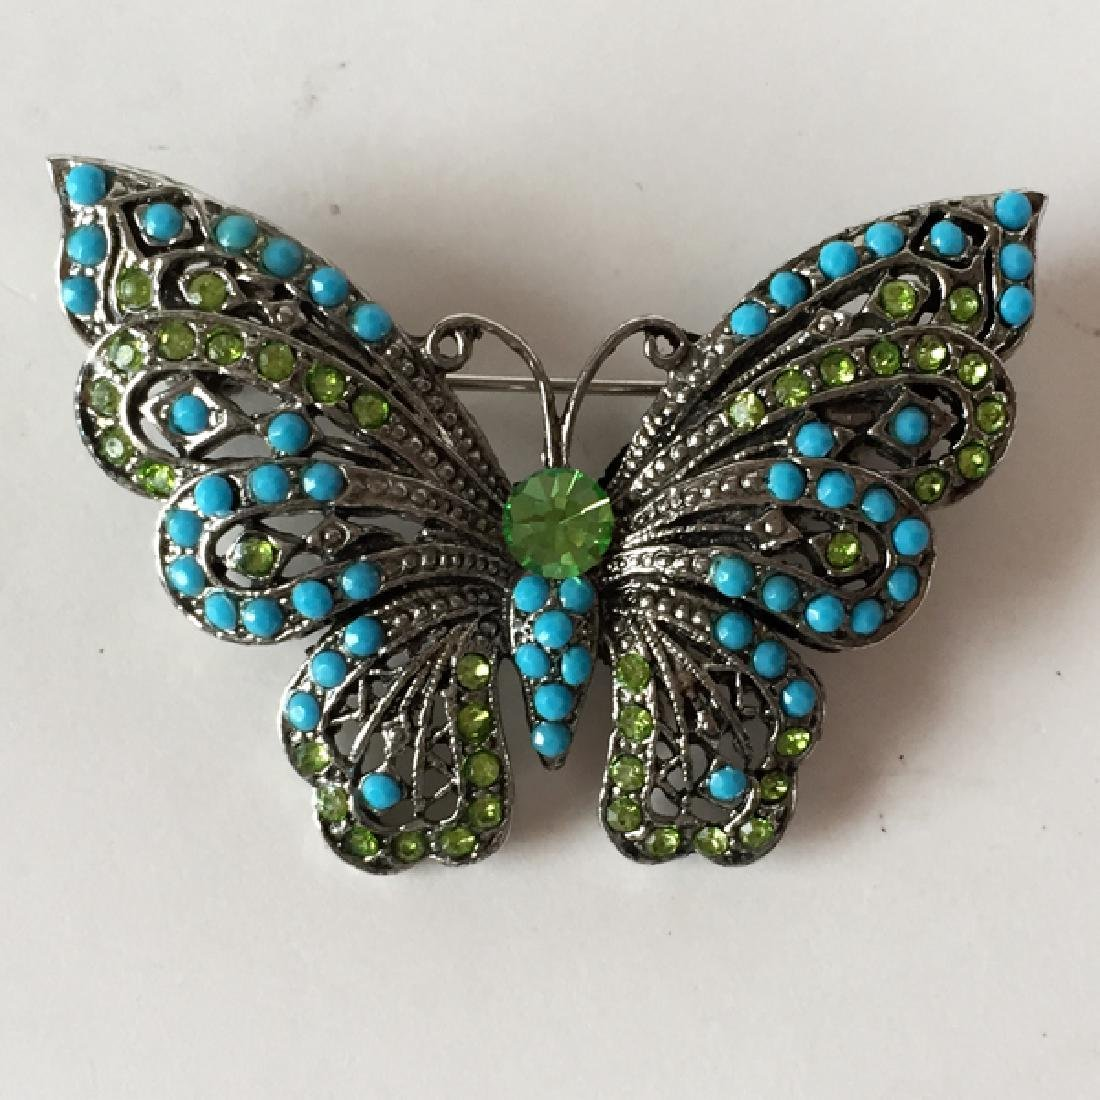 Silver tone BUTTERFLY shaped brooch with rhinestones - 3